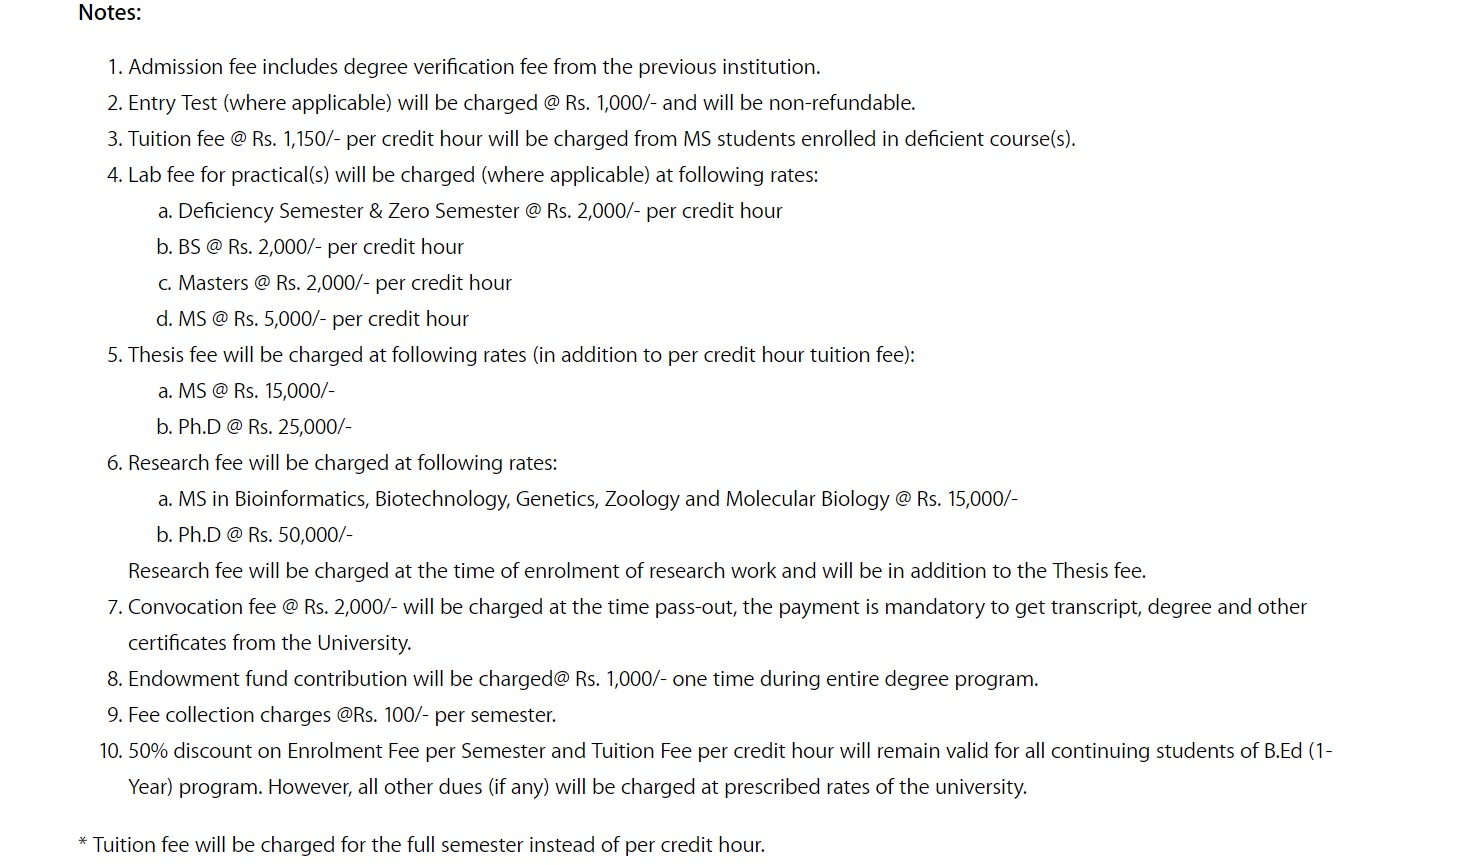 Virtual University of Pakistan Fee structure